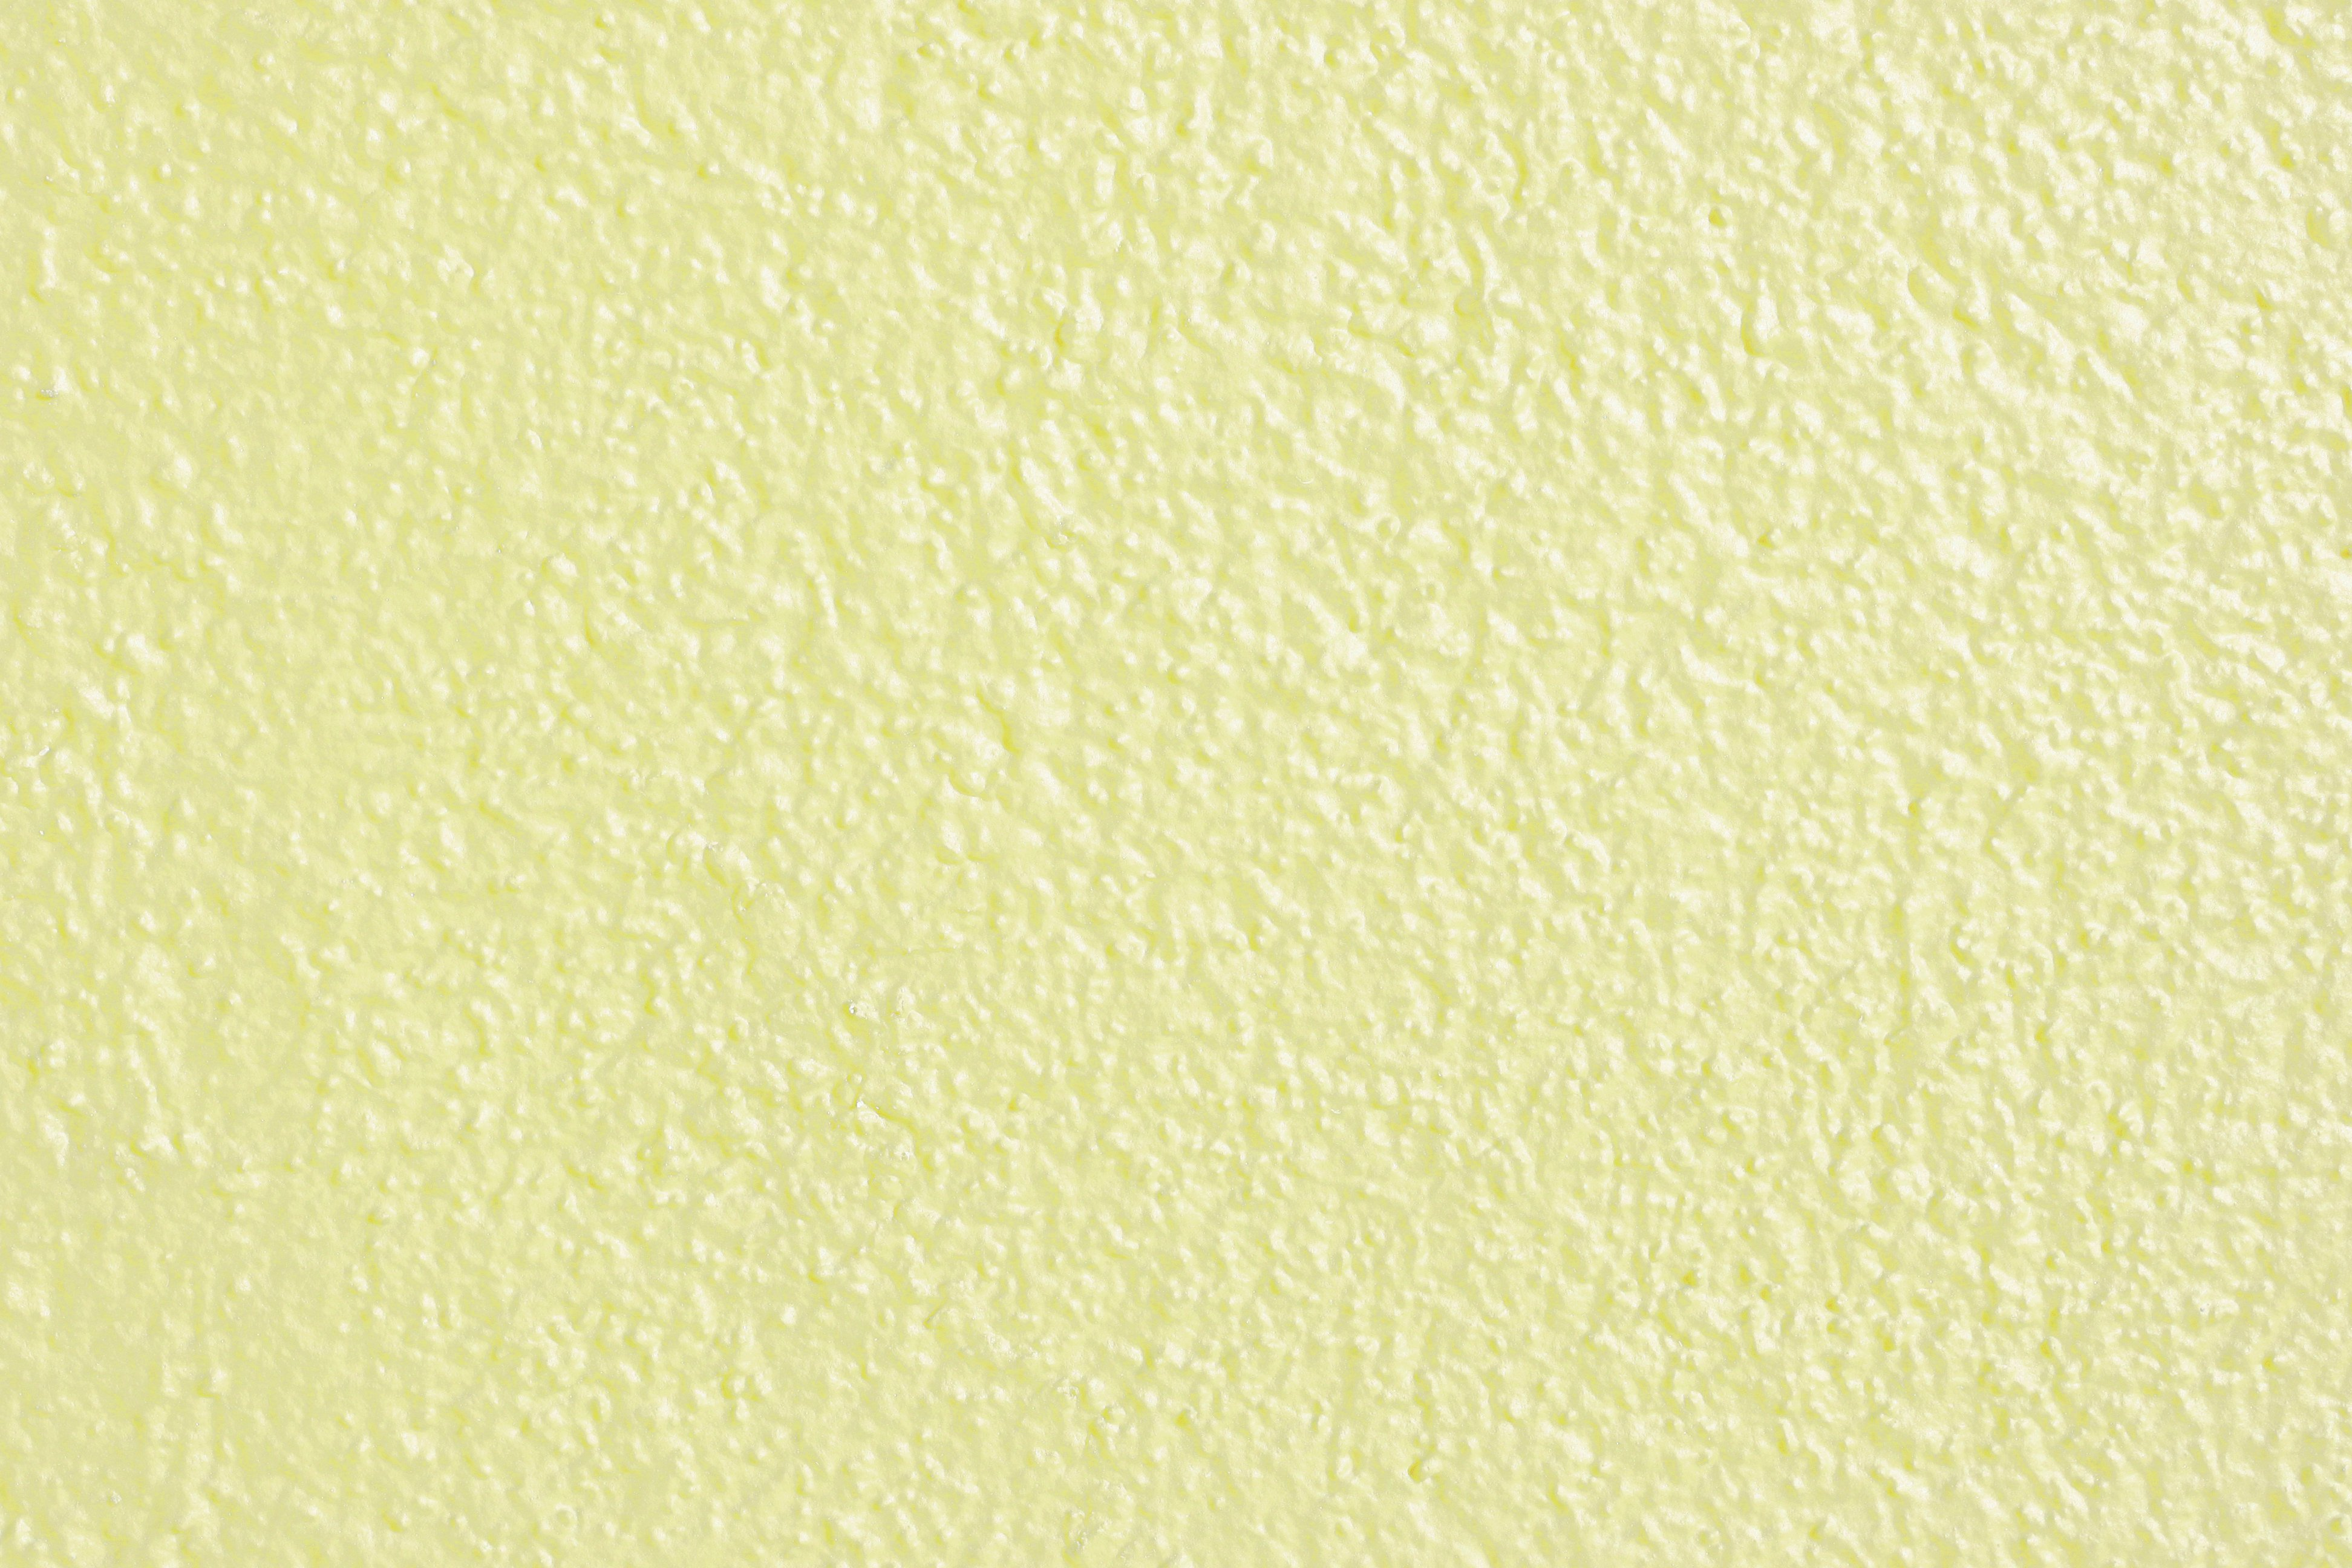 Pale Yellow Painted Wall Texture High Resolution Photo 3888x2592